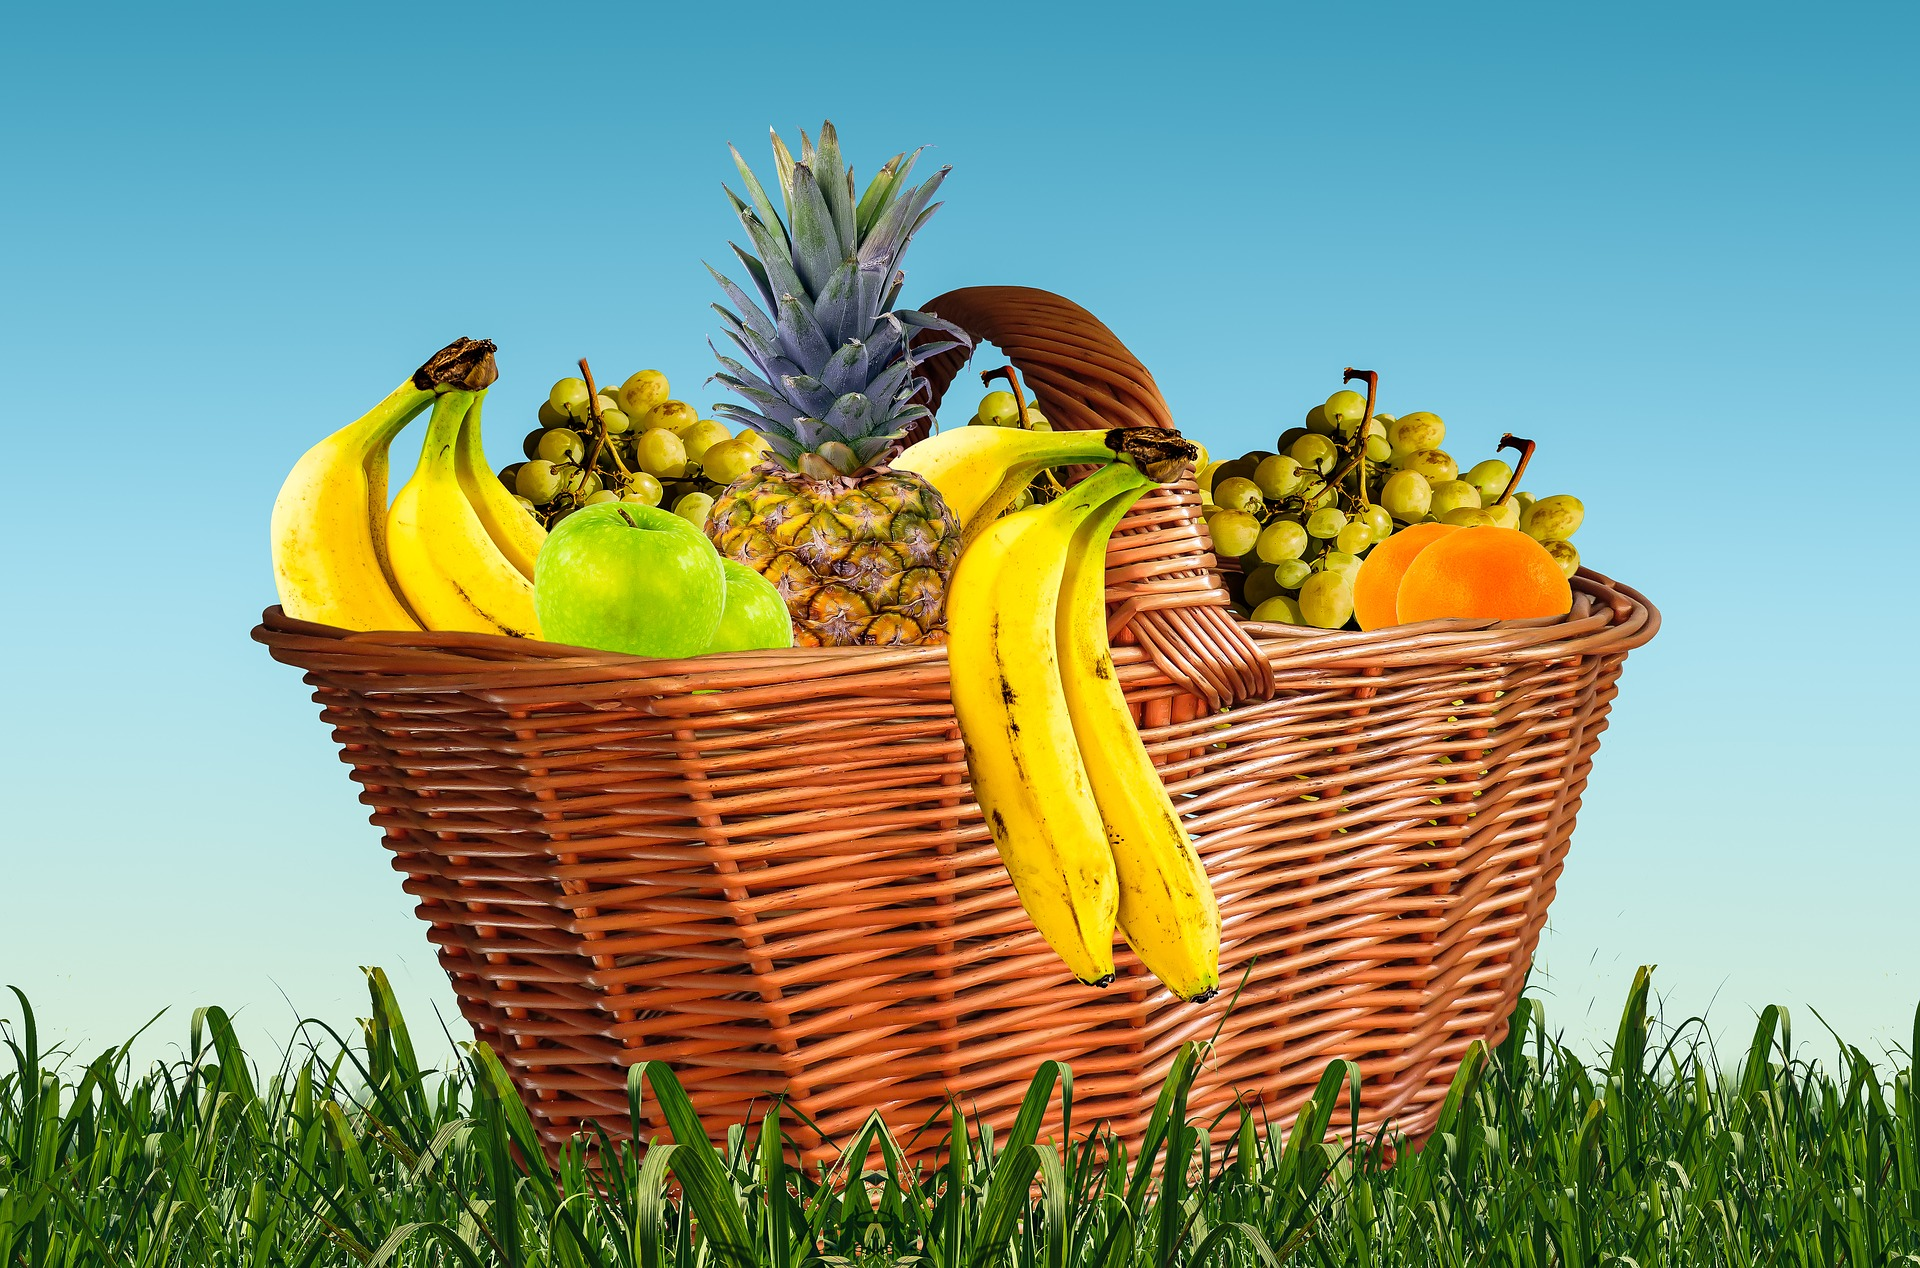 Fruit Basket, Banana, Basket, Food, Fruit, HQ Photo